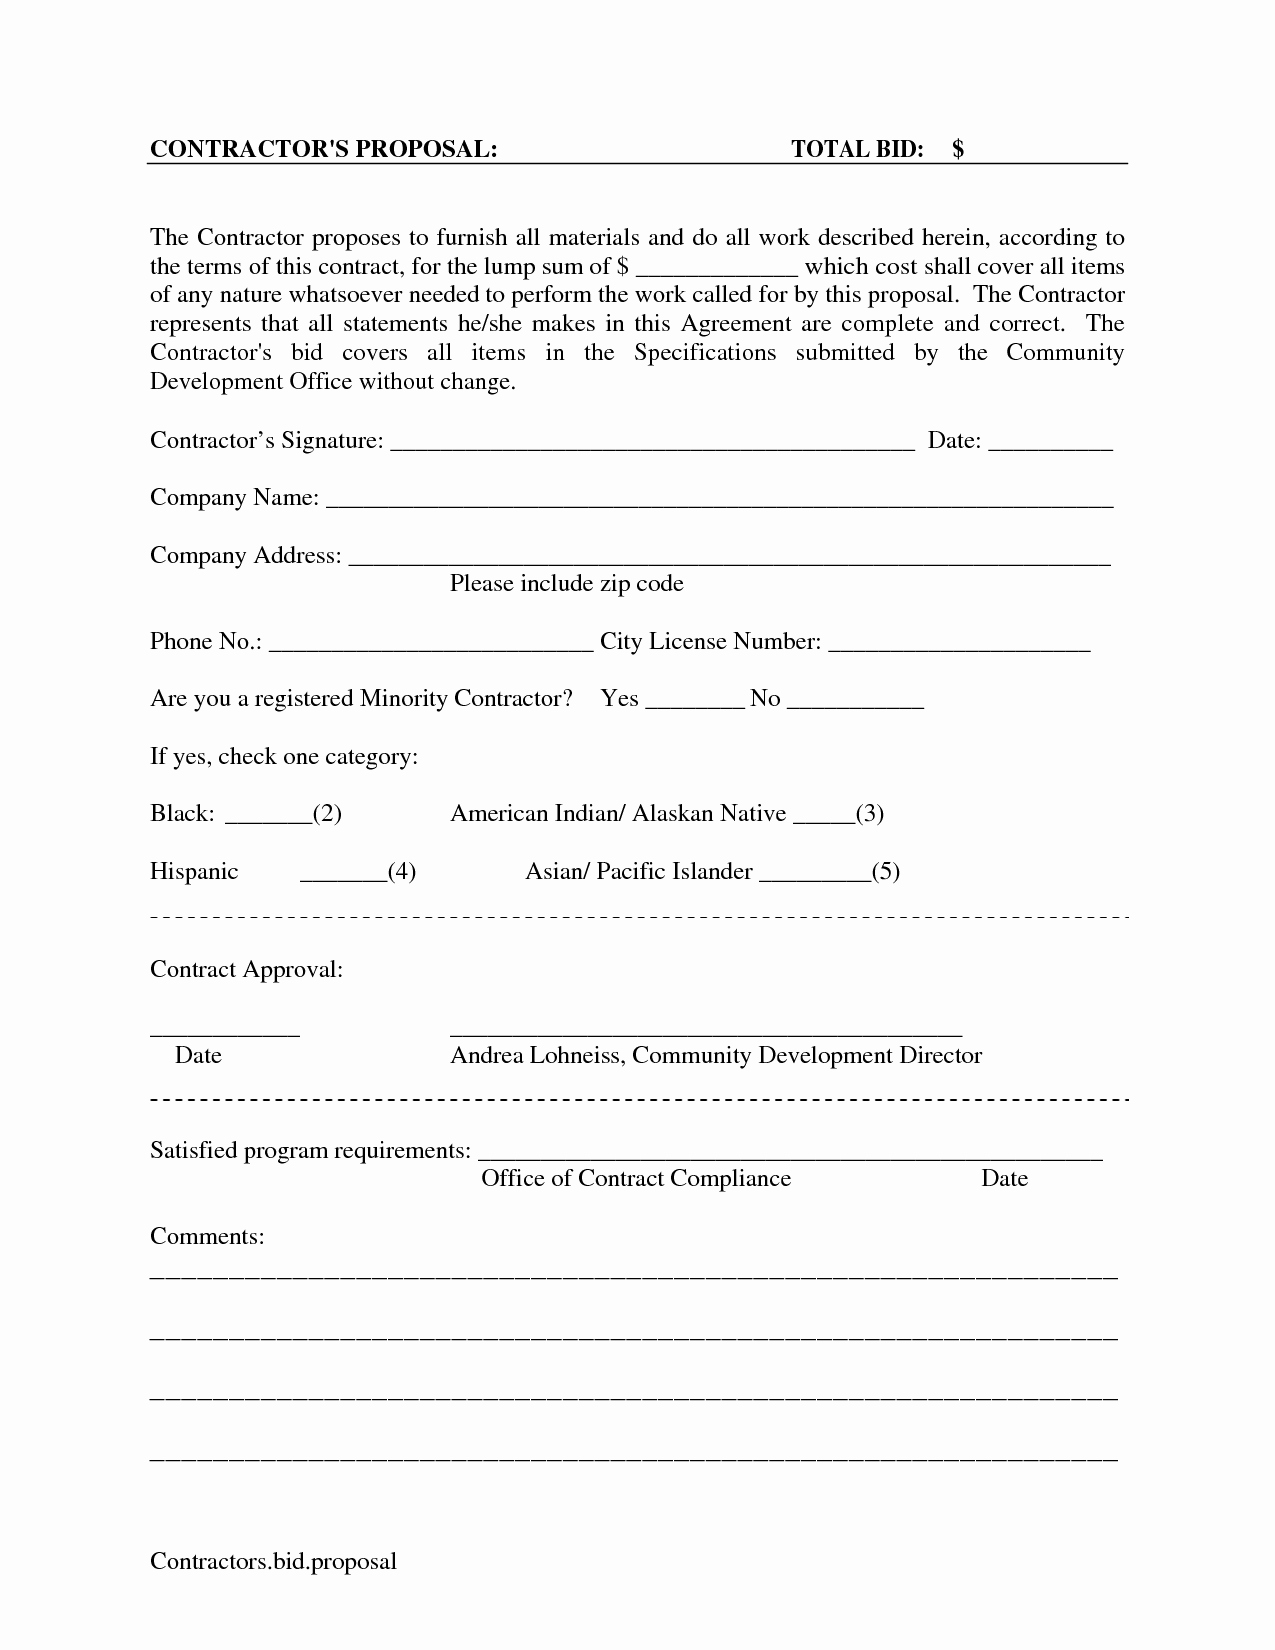 Free Printable Construction Contracts Lovely Printable Blank Bid Proposal forms